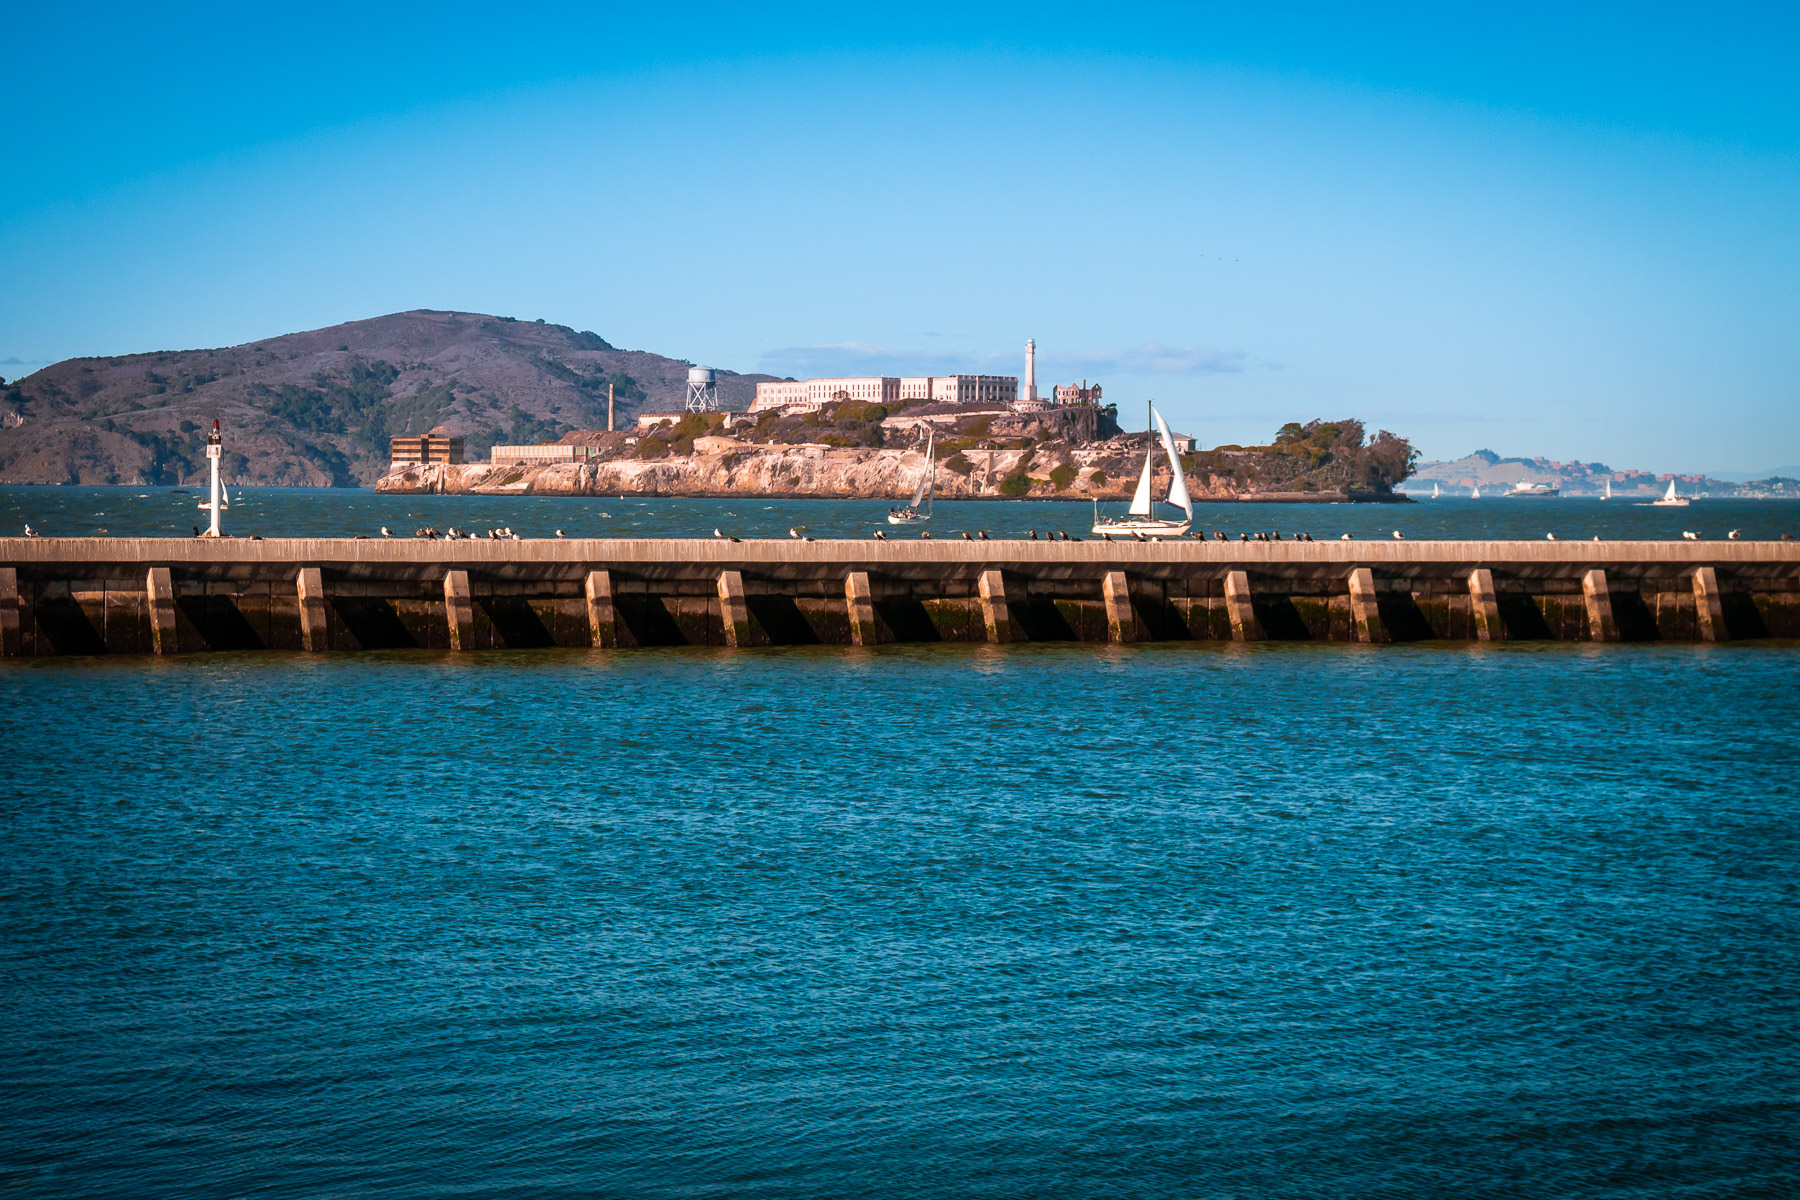 Alcatraz Island as seen from San Francisco's Aquatic Park.